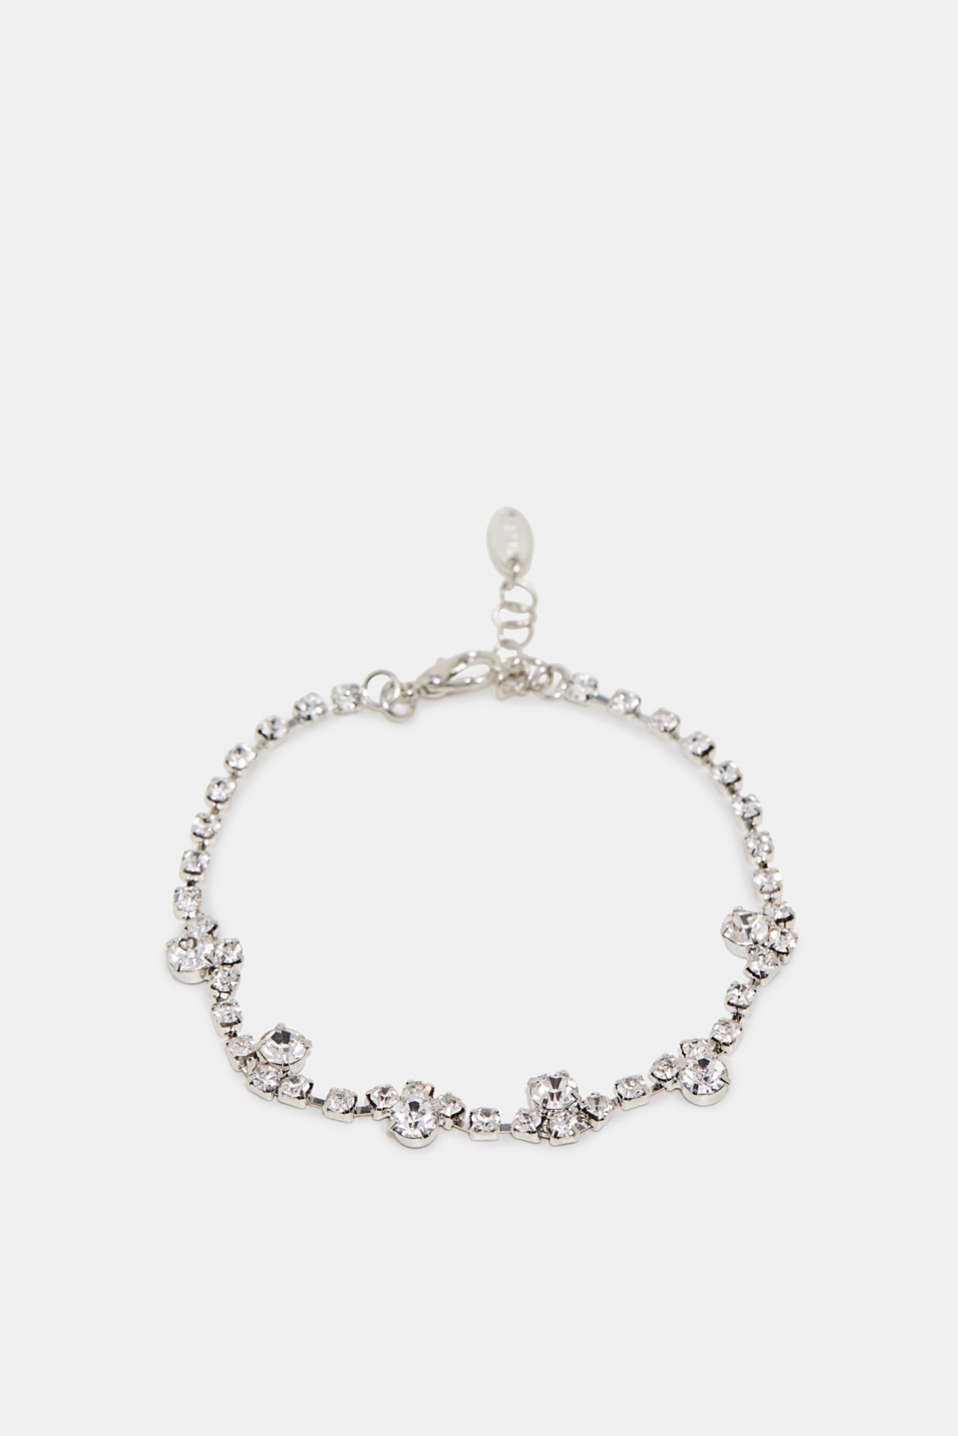 Metal bracelet with rhinestone details as a pretty, sparkly present or a treat for yourself!